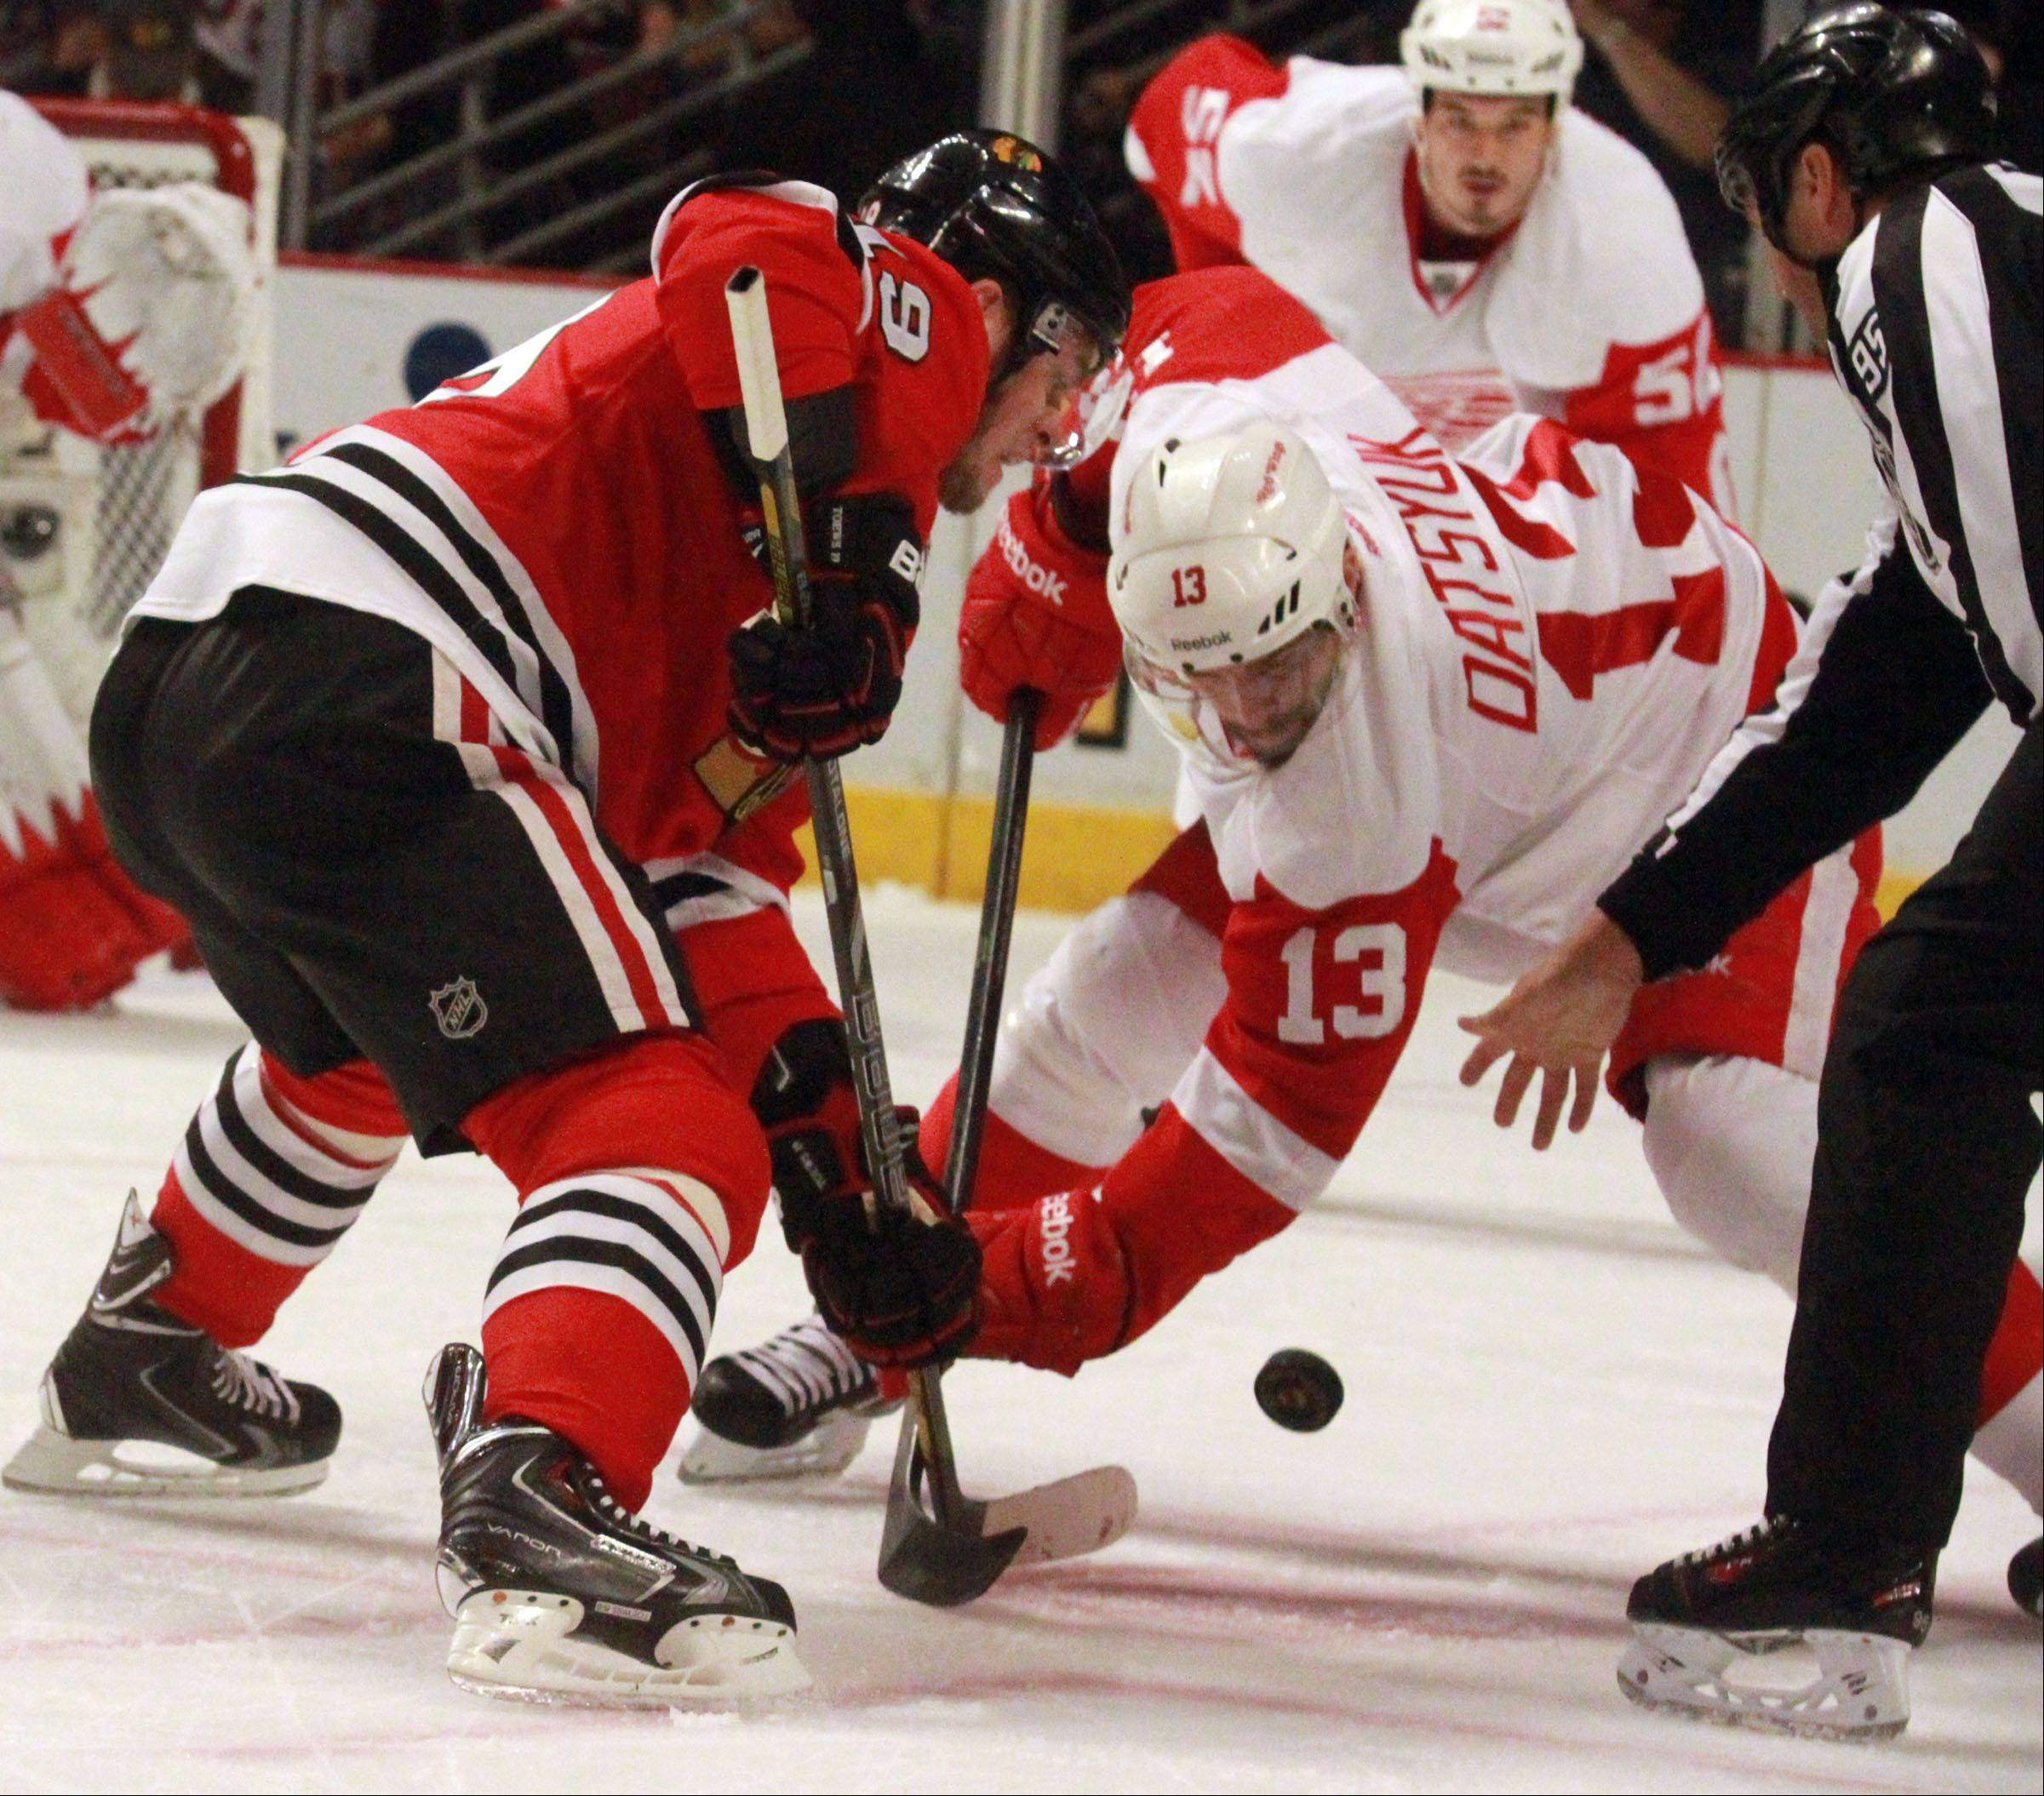 Center Jonathan Toews faces off with Detroit Red Wings center Pavel Datsyuk during the first period of Game 2 in the Western Conference semifinal playoffs in Chicago on Saturday.